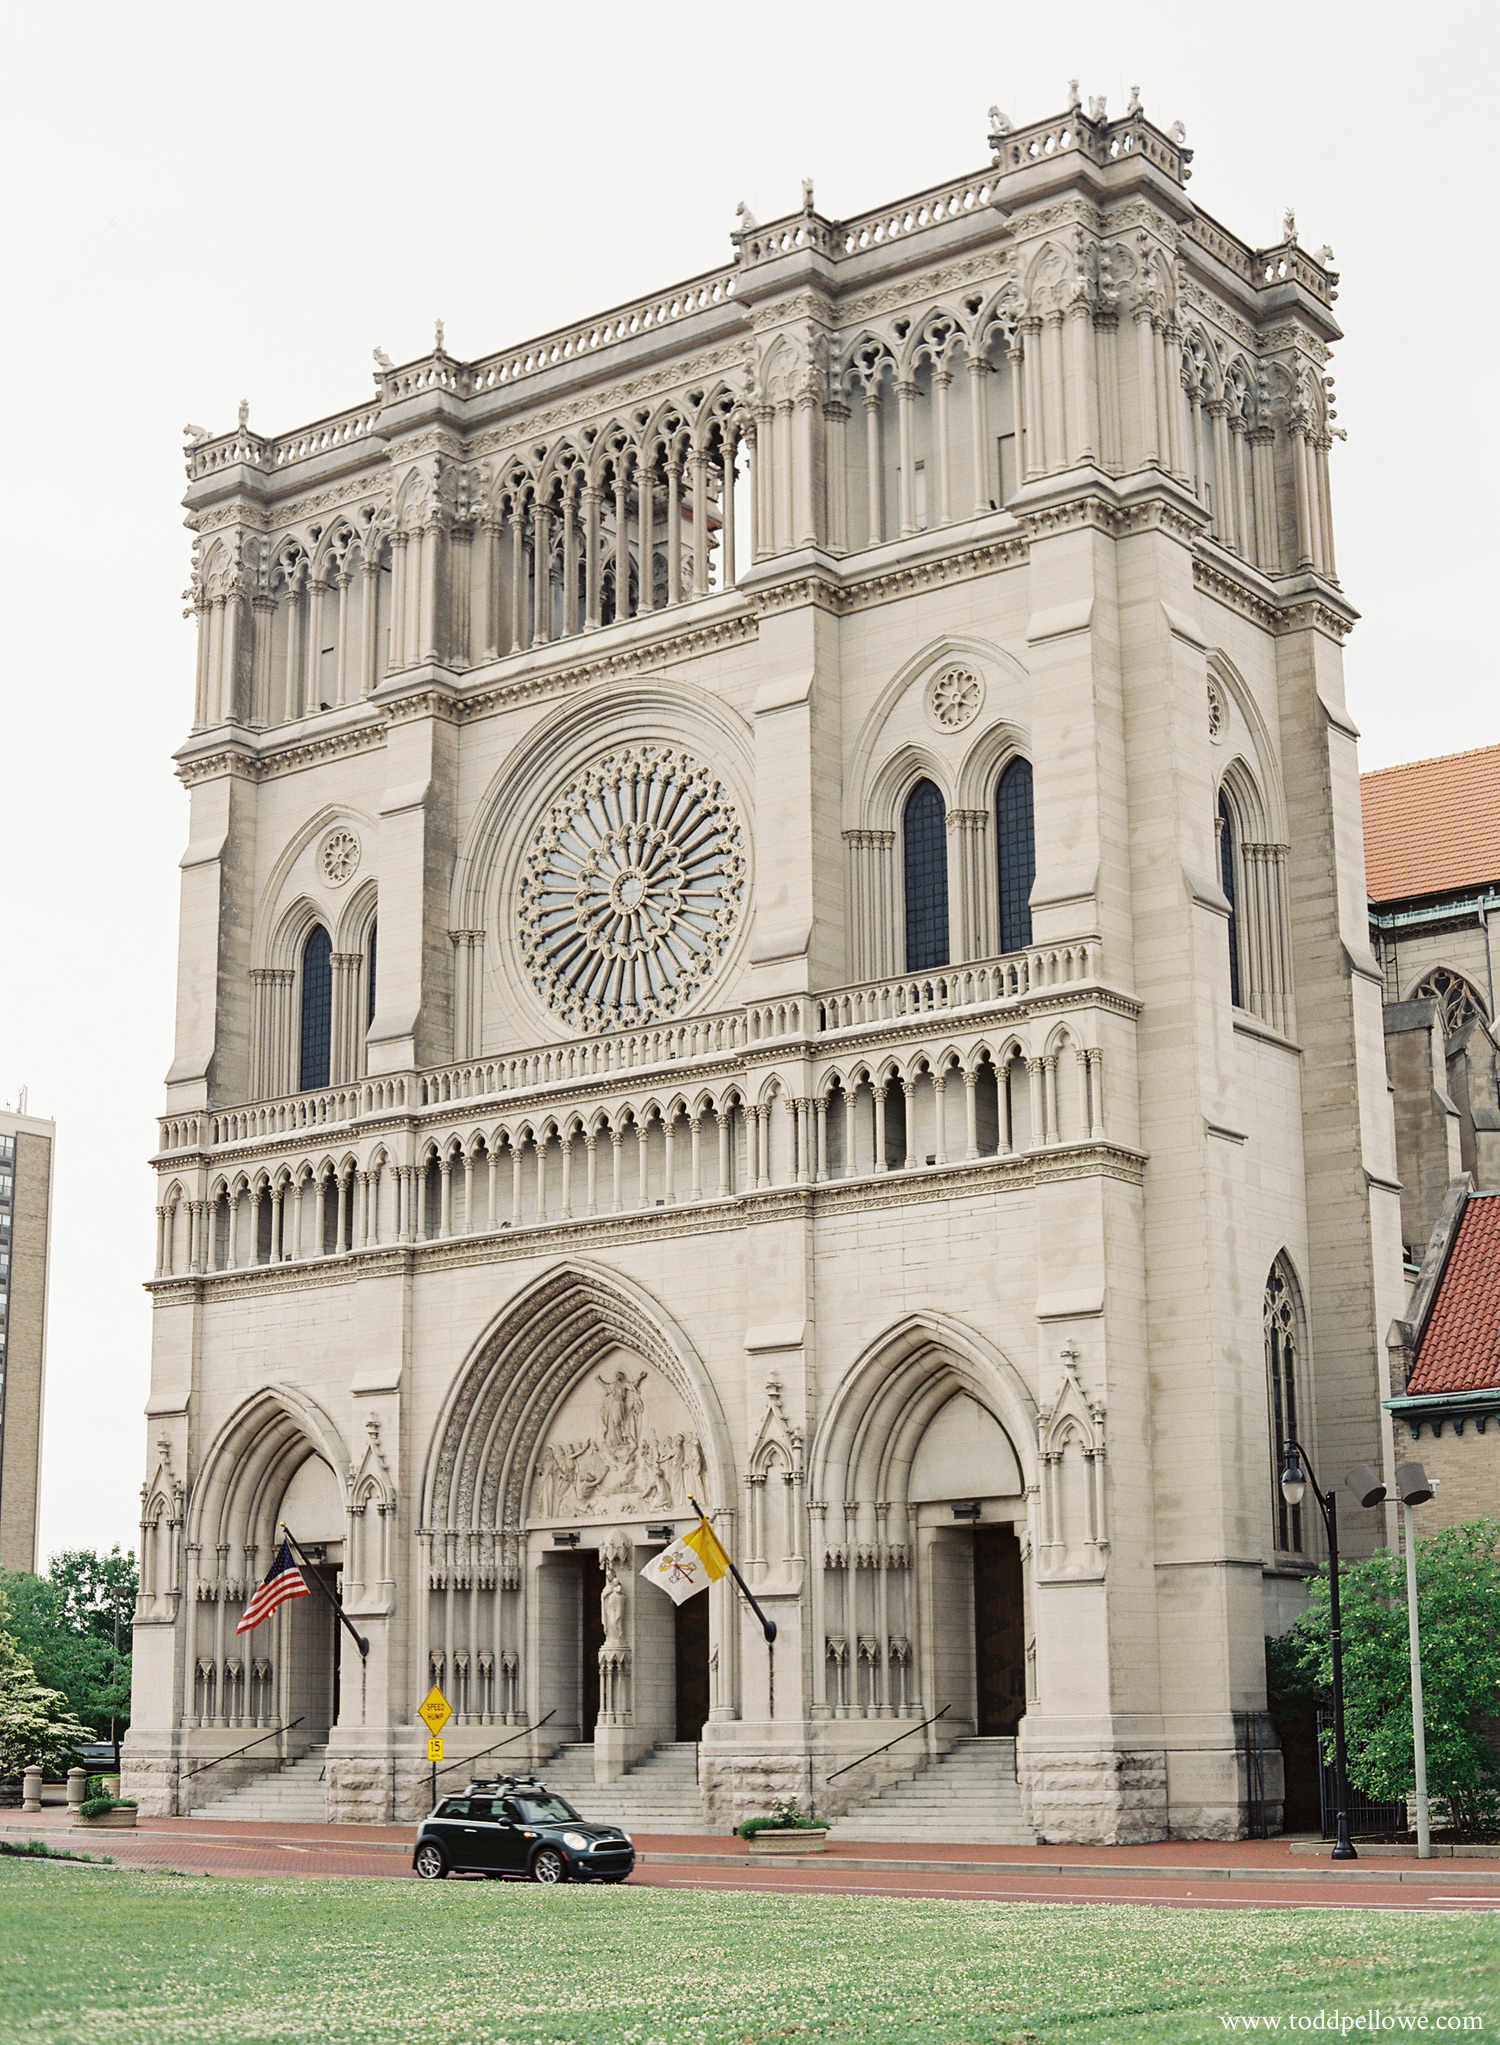 Cathedral Basilica of the Assumption in Covington